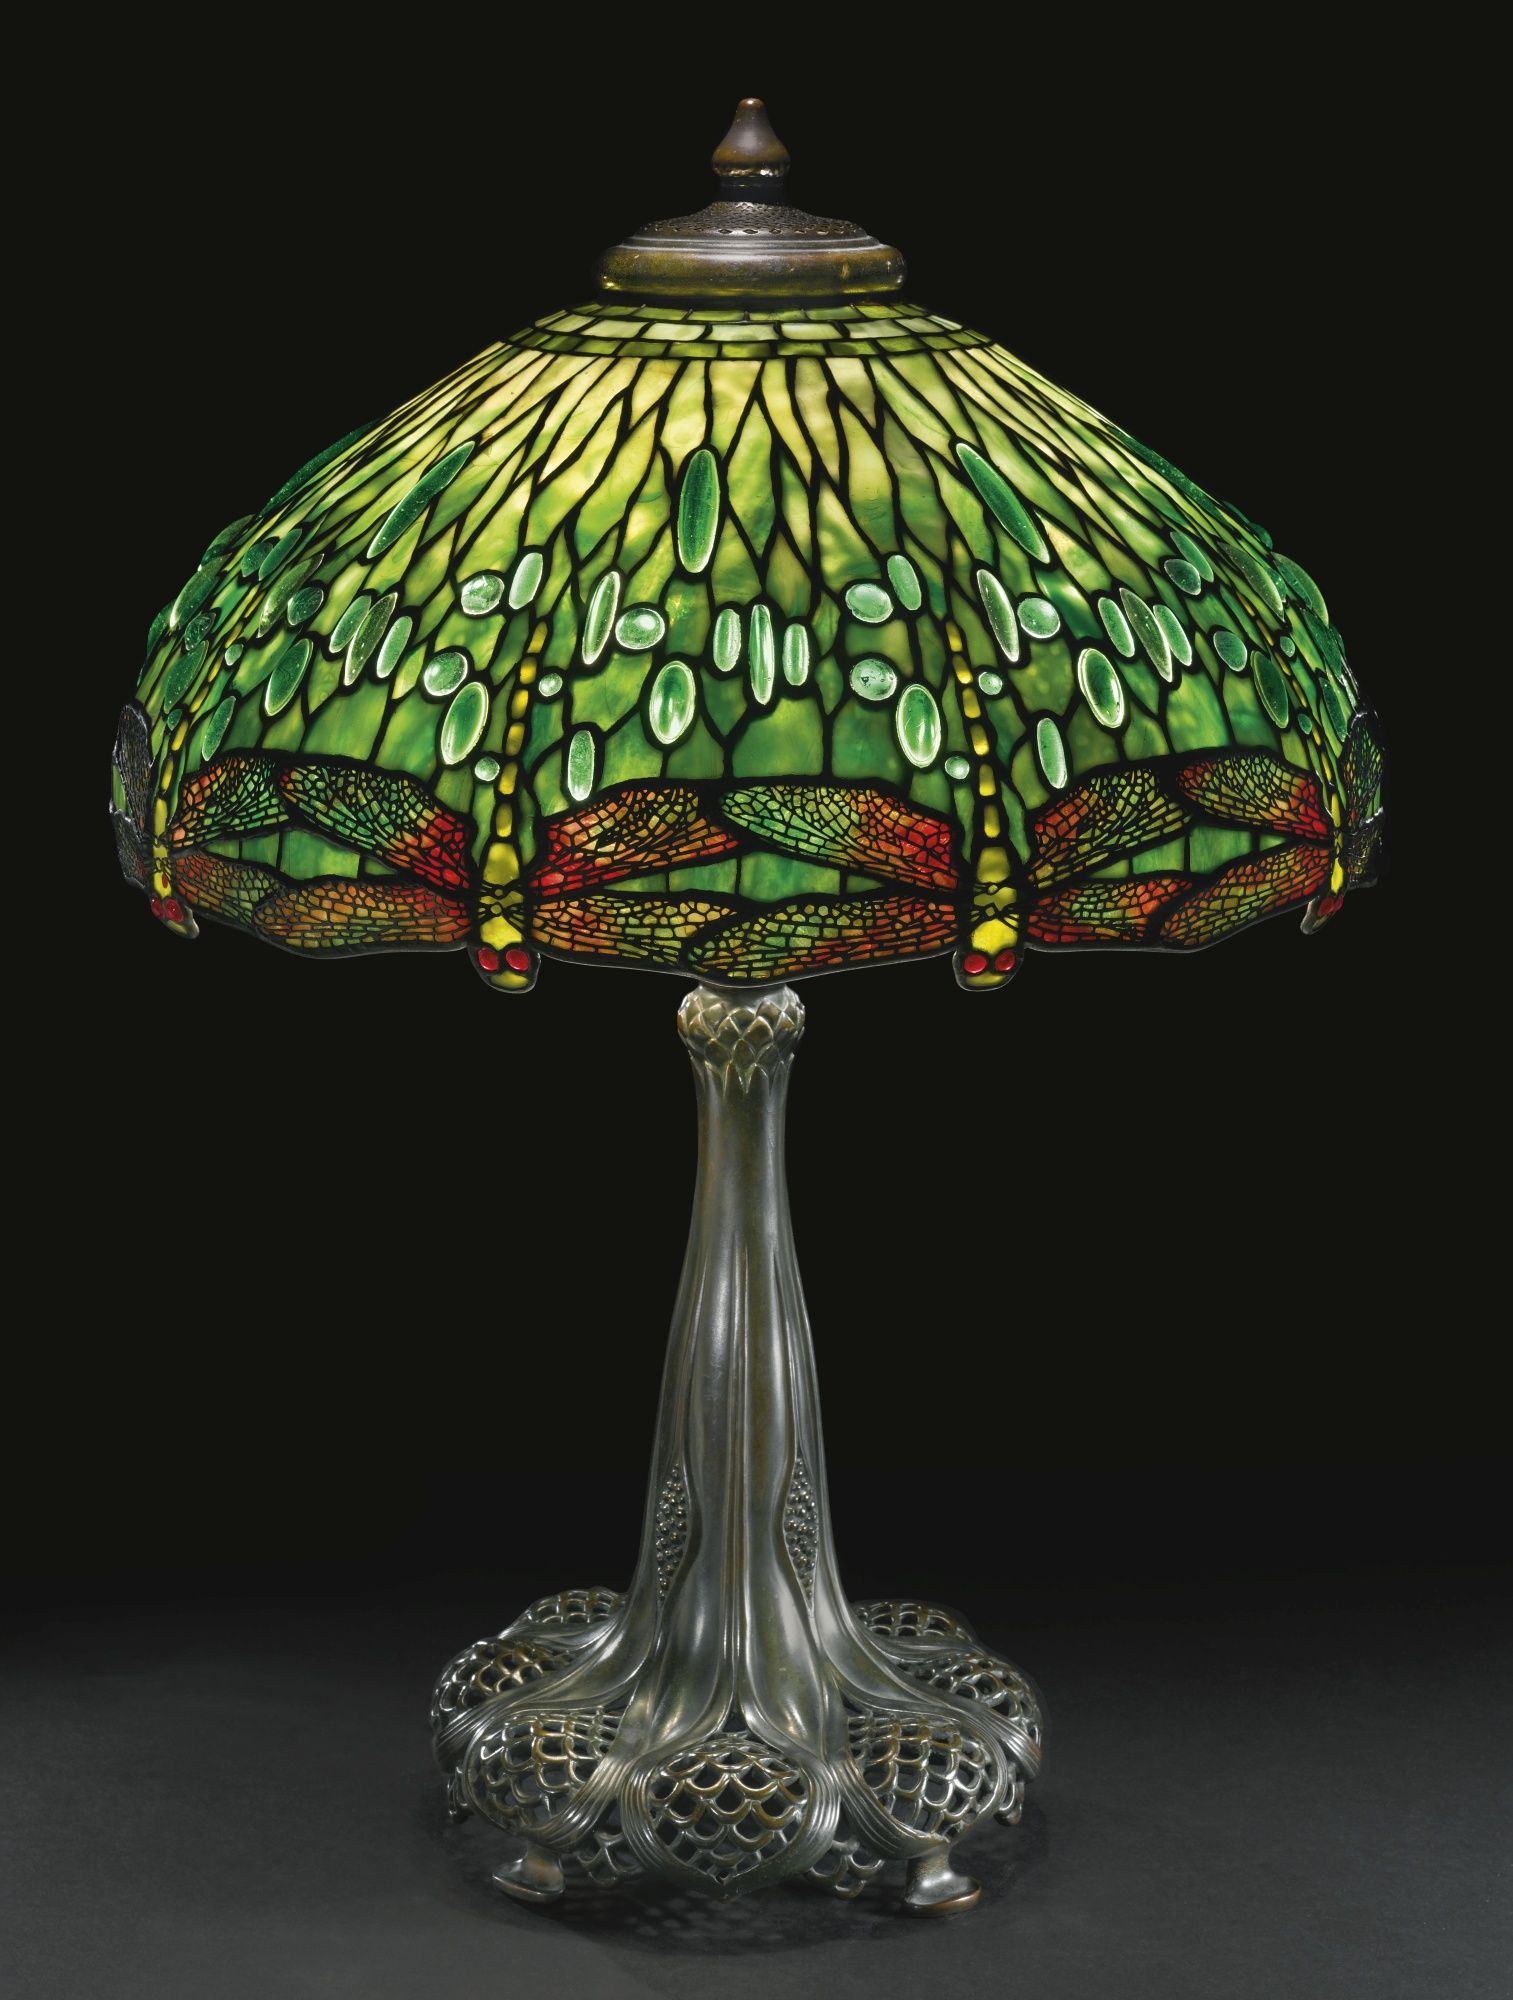 Tiffany Studios Lot Tiffany Lamps Tiffany Style Lamp Stained